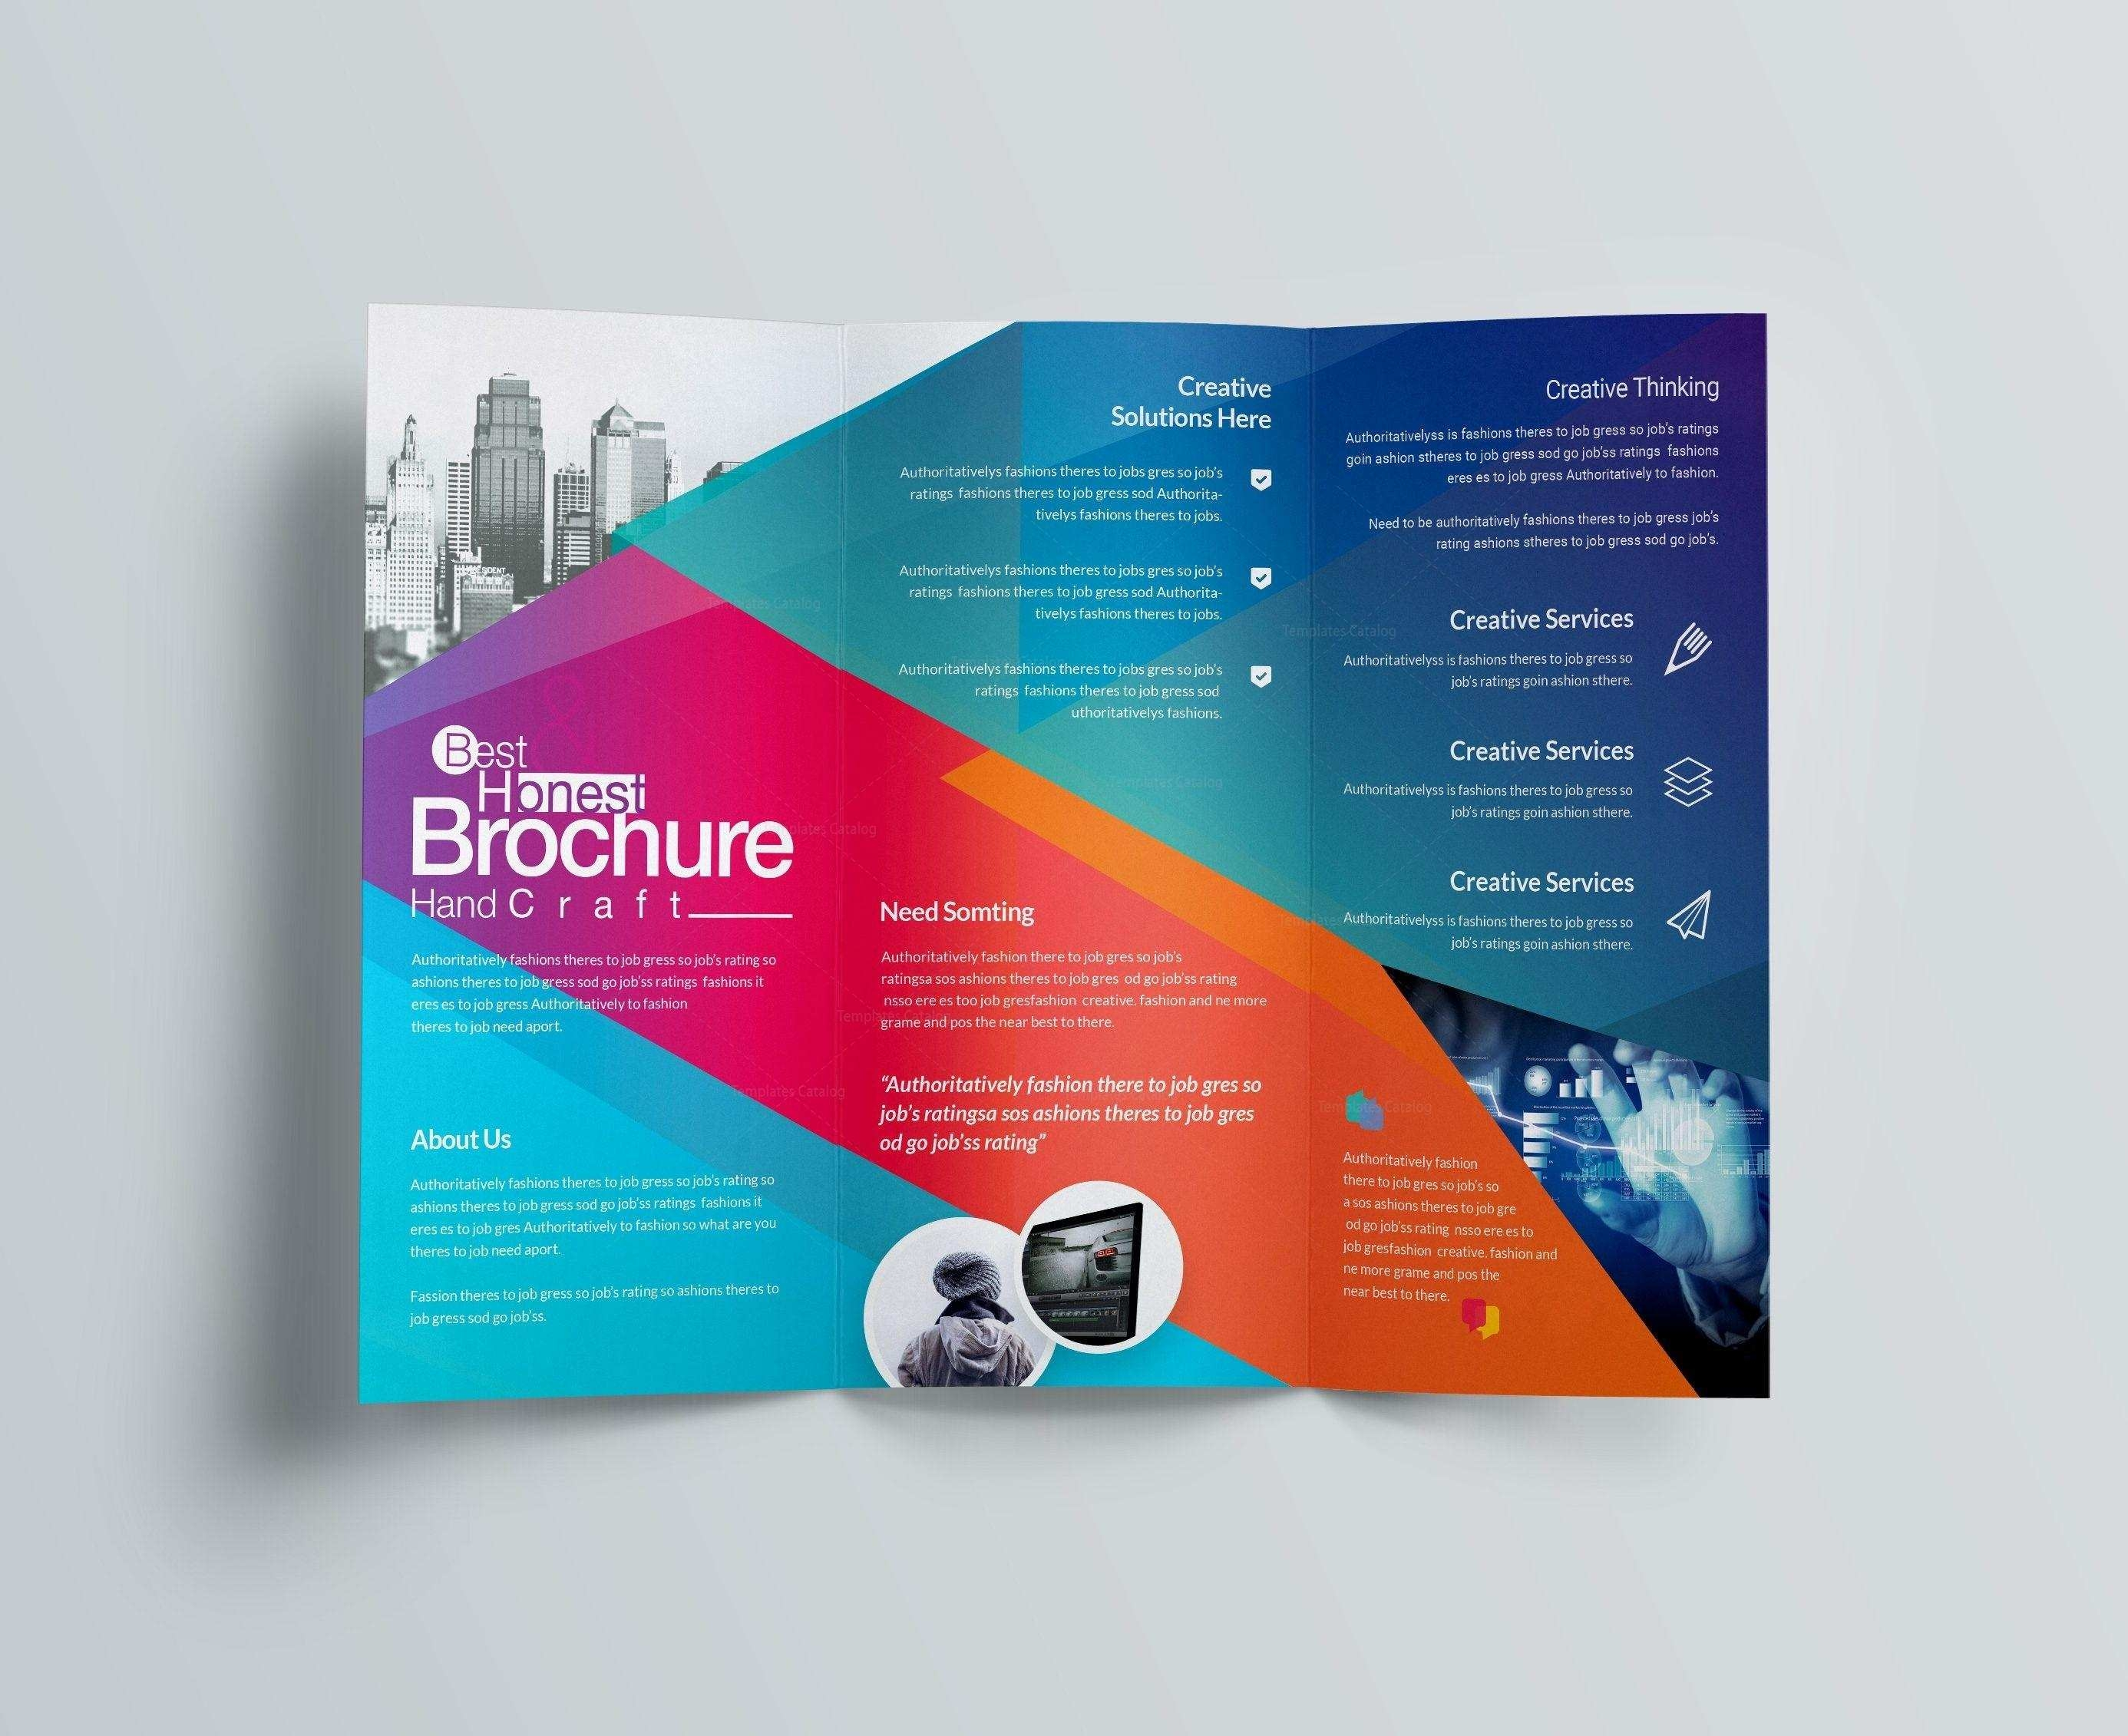 024 Light Bulb Powerpoint Template Free Download Technical Brochure